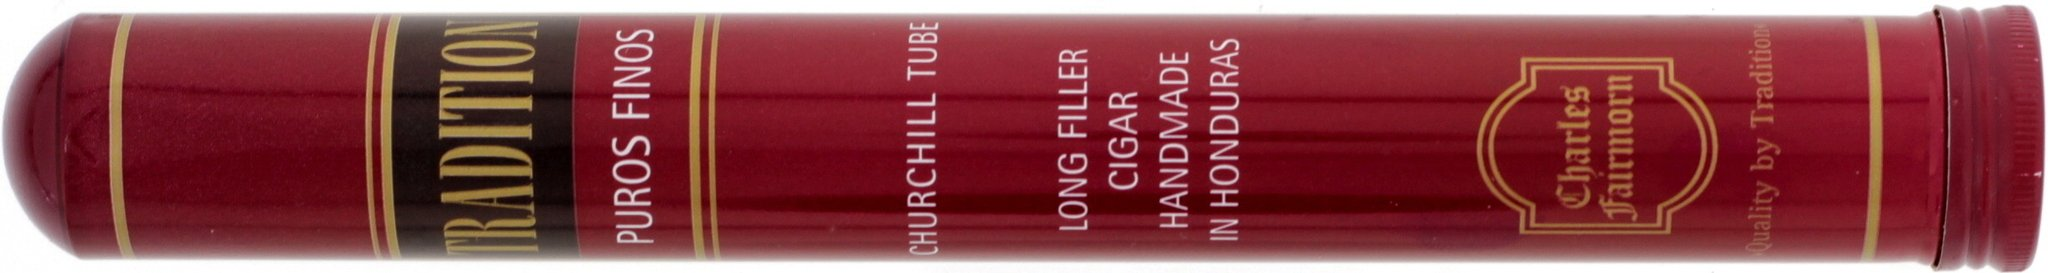 Charles Fairmorn Tradition Churchill Tubes